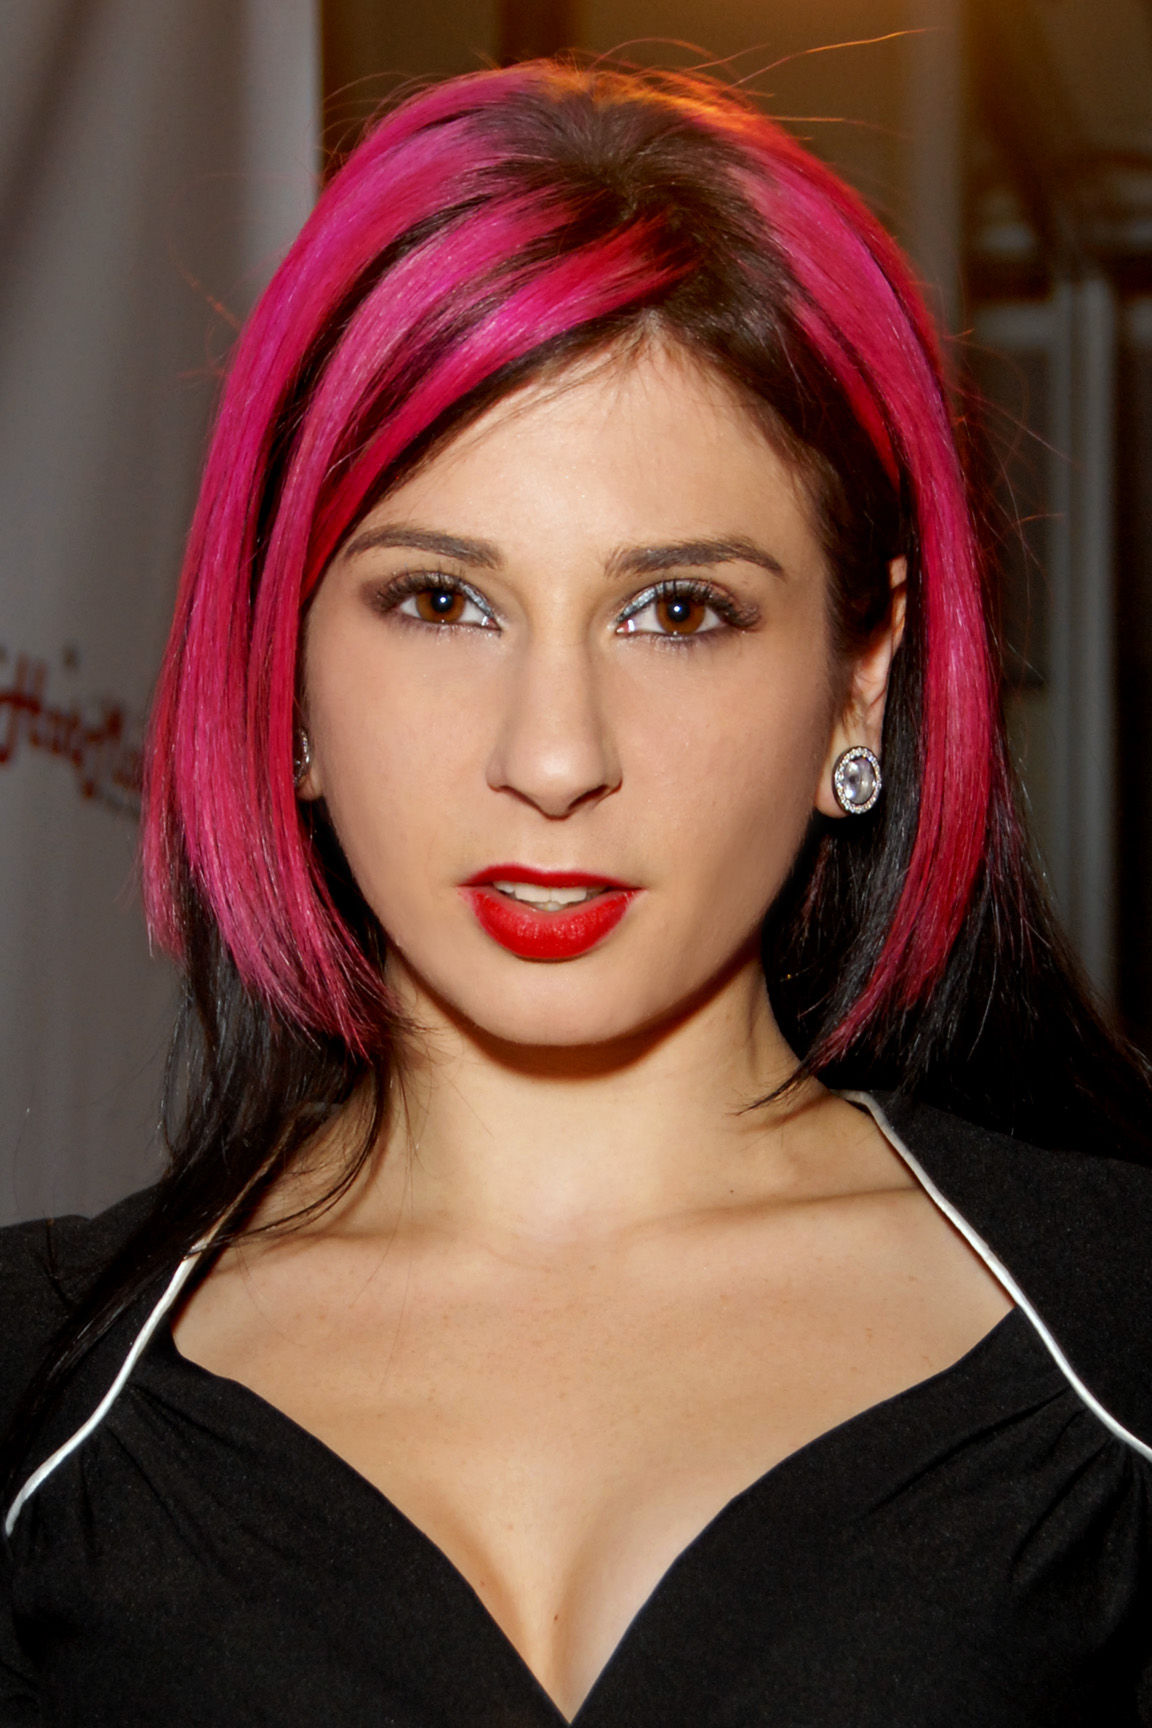 Photo of Joanna Angel: American pornographic actress